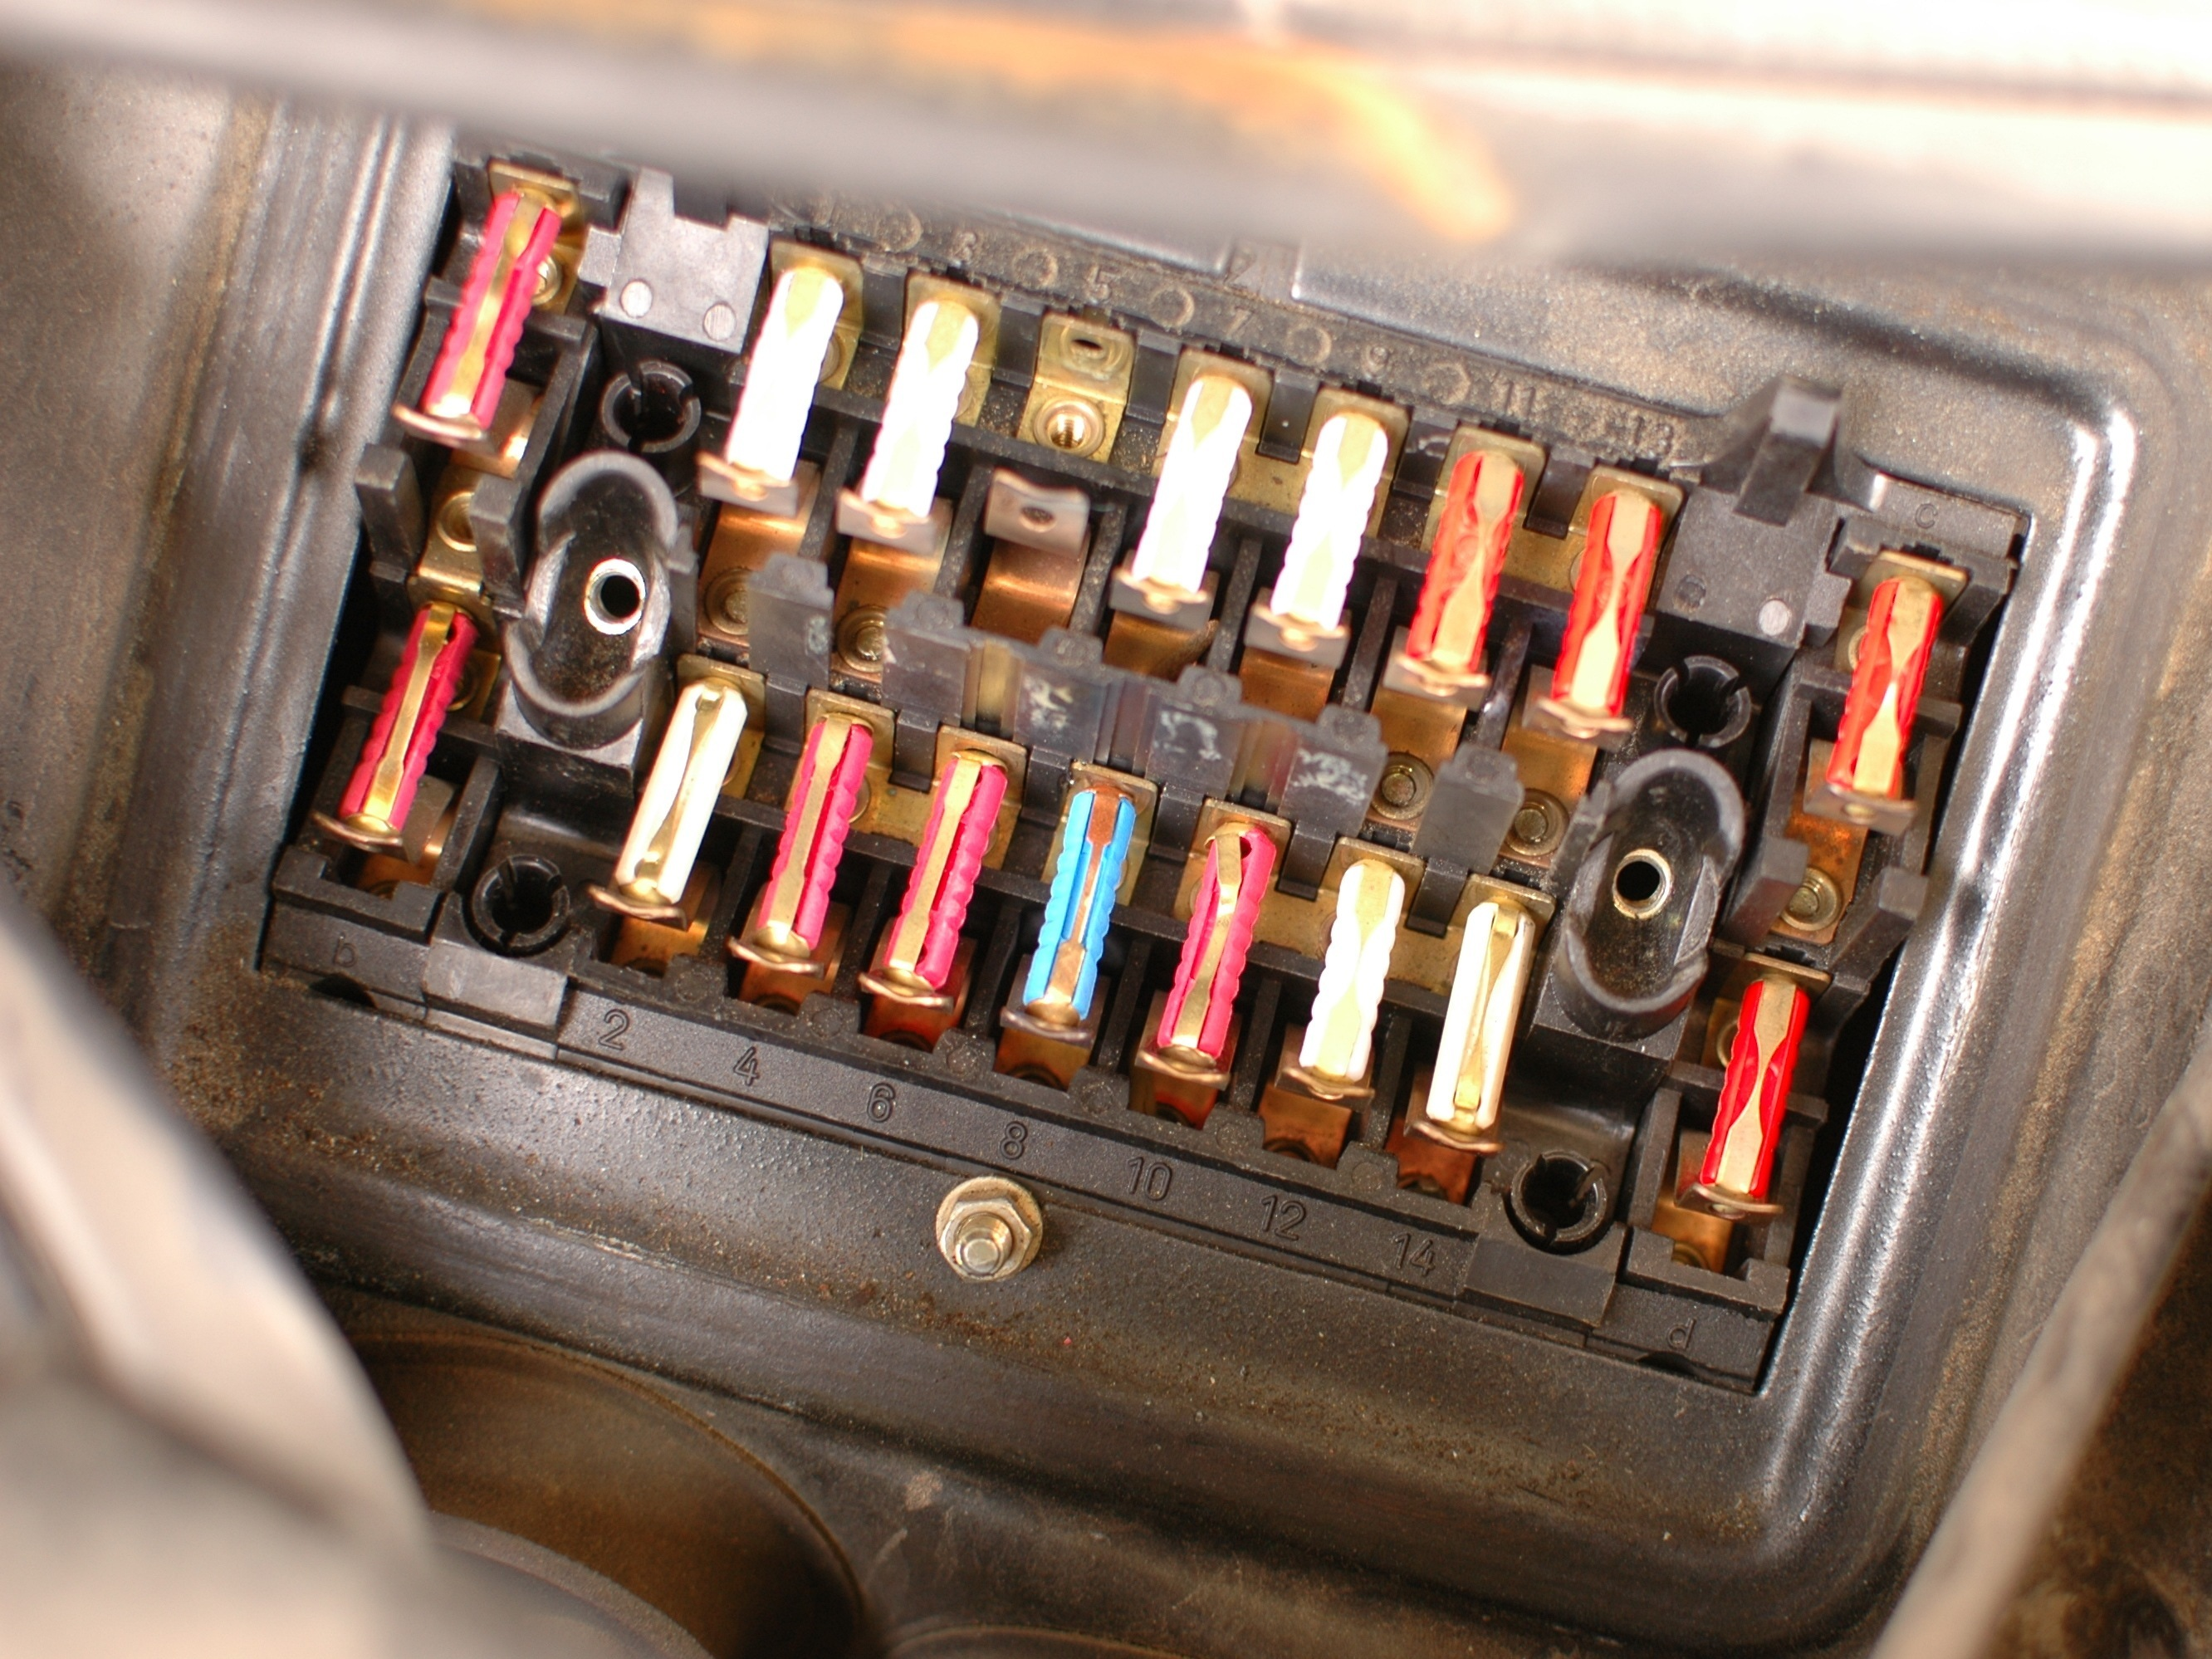 AfYAfmoCaMTVU2ap how to check mercedes w123 fuses ifixit 1978 Mercedes 450SEL at arjmand.co